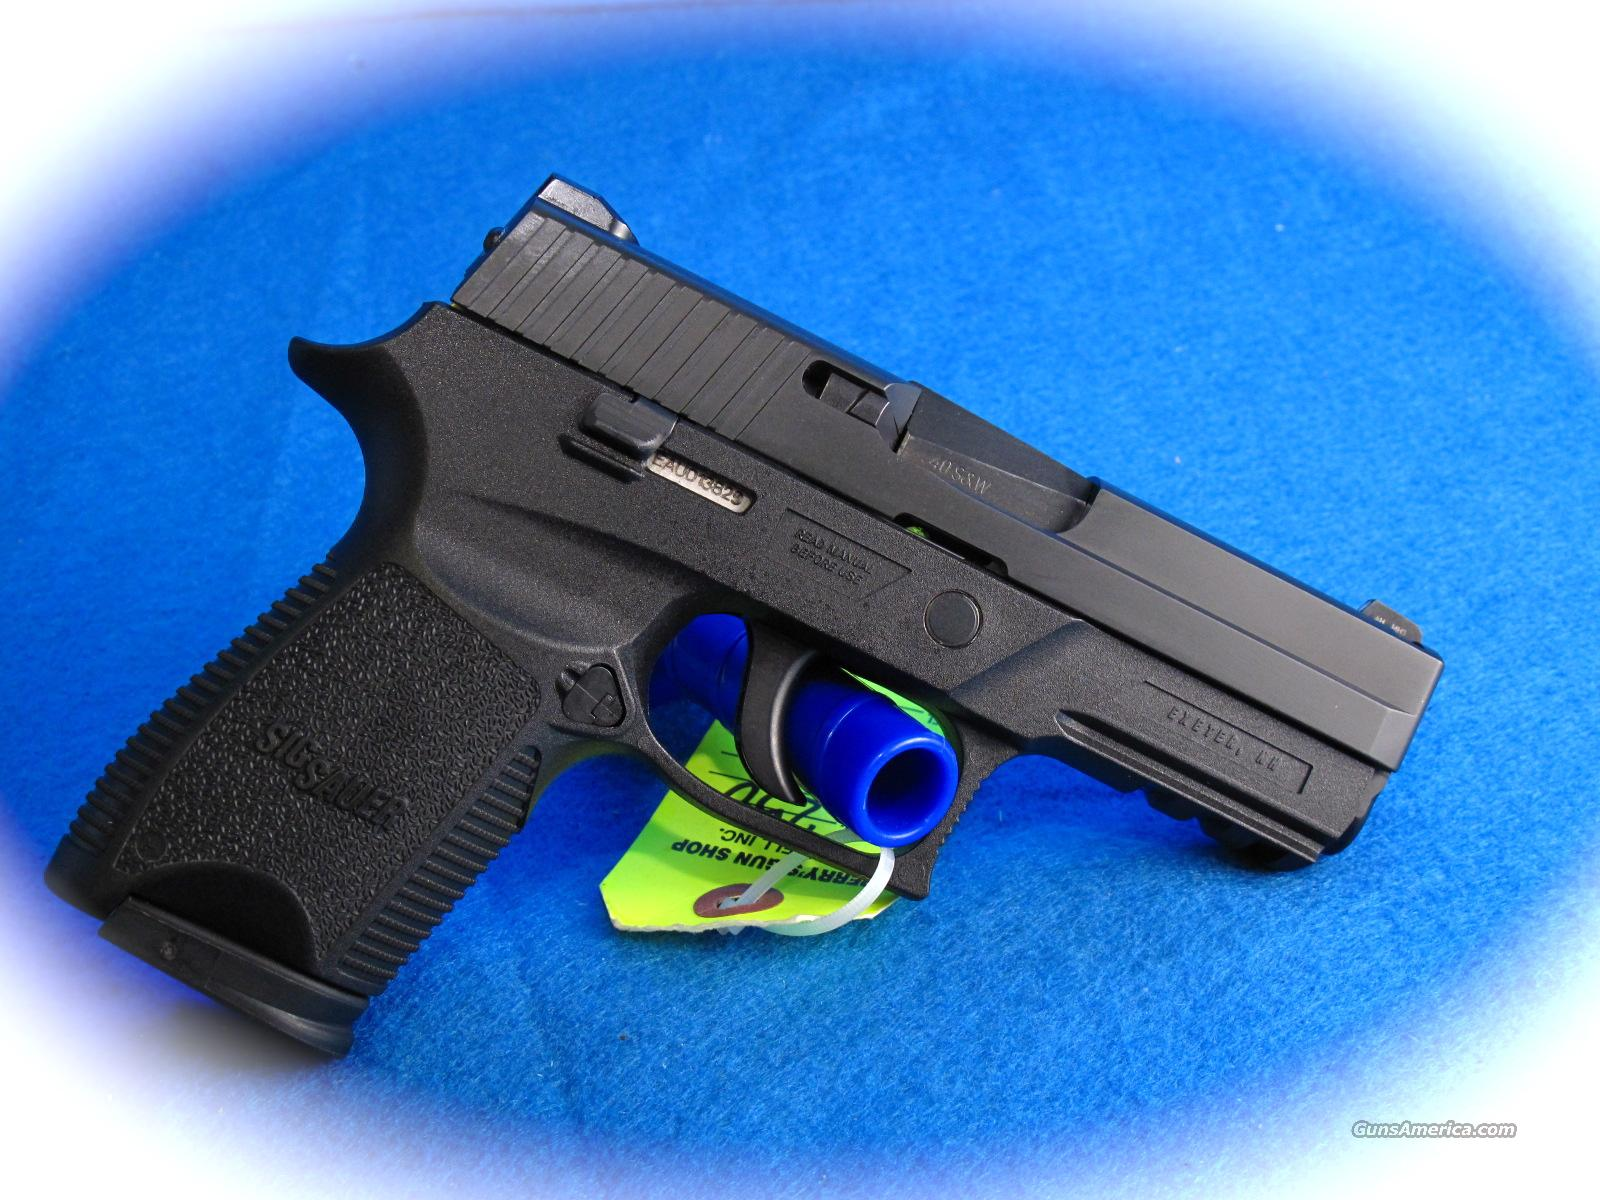 Sig Sauer P250 Compact 40 S&W Nitron Finish**NEW**  Guns > Pistols > Sig - Sauer/Sigarms Pistols > P250